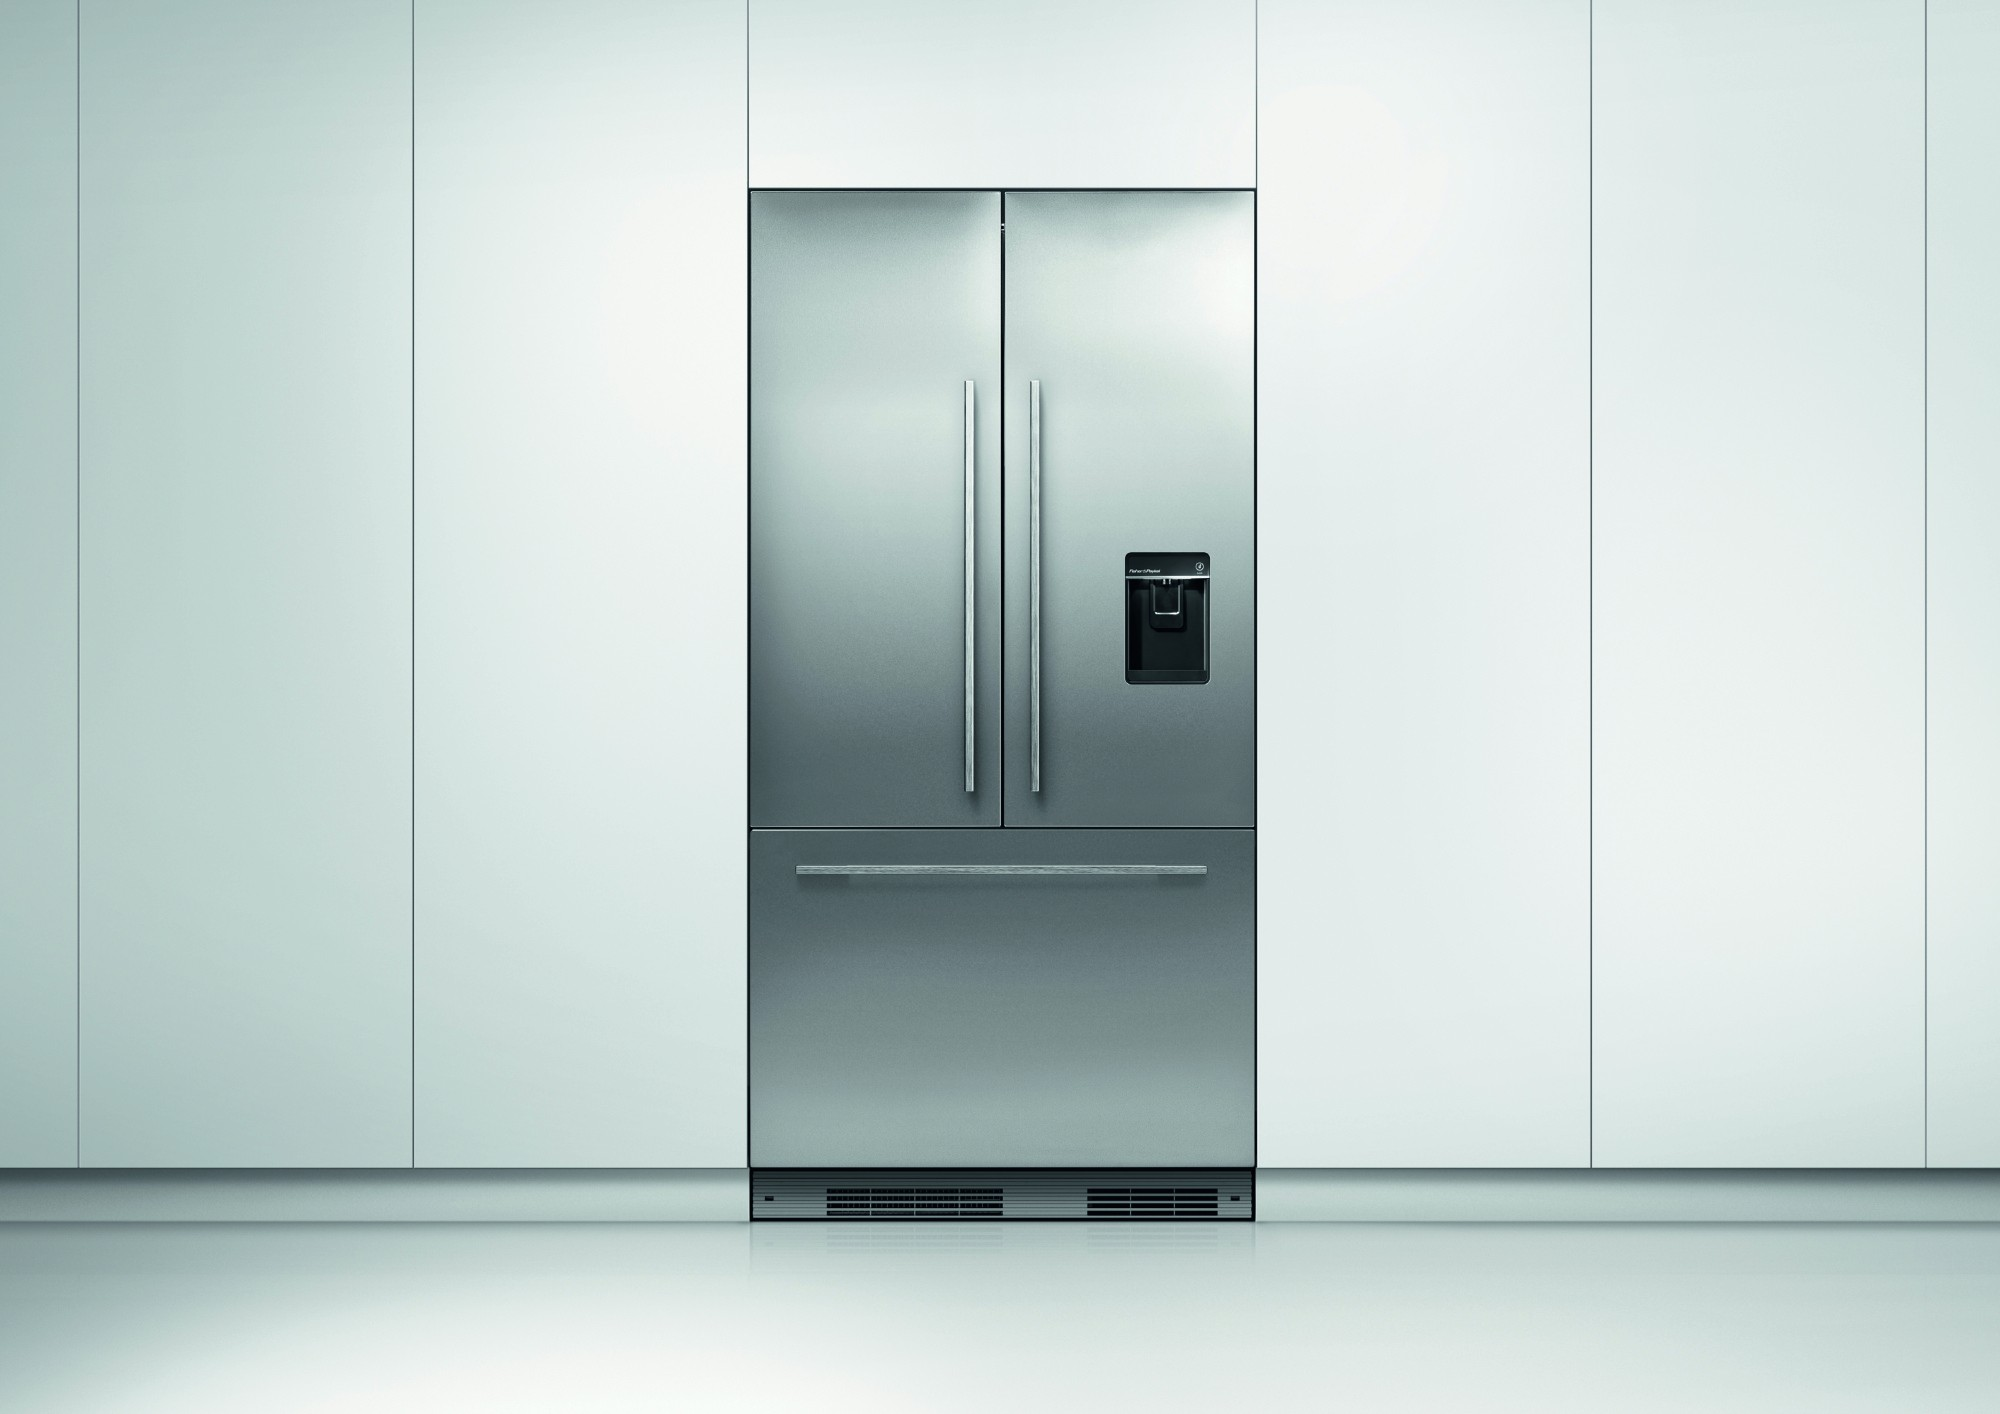 rs36a72u1n fisher paykel 36 built in counterdepth french door refrigerator panel ready. Black Bedroom Furniture Sets. Home Design Ideas